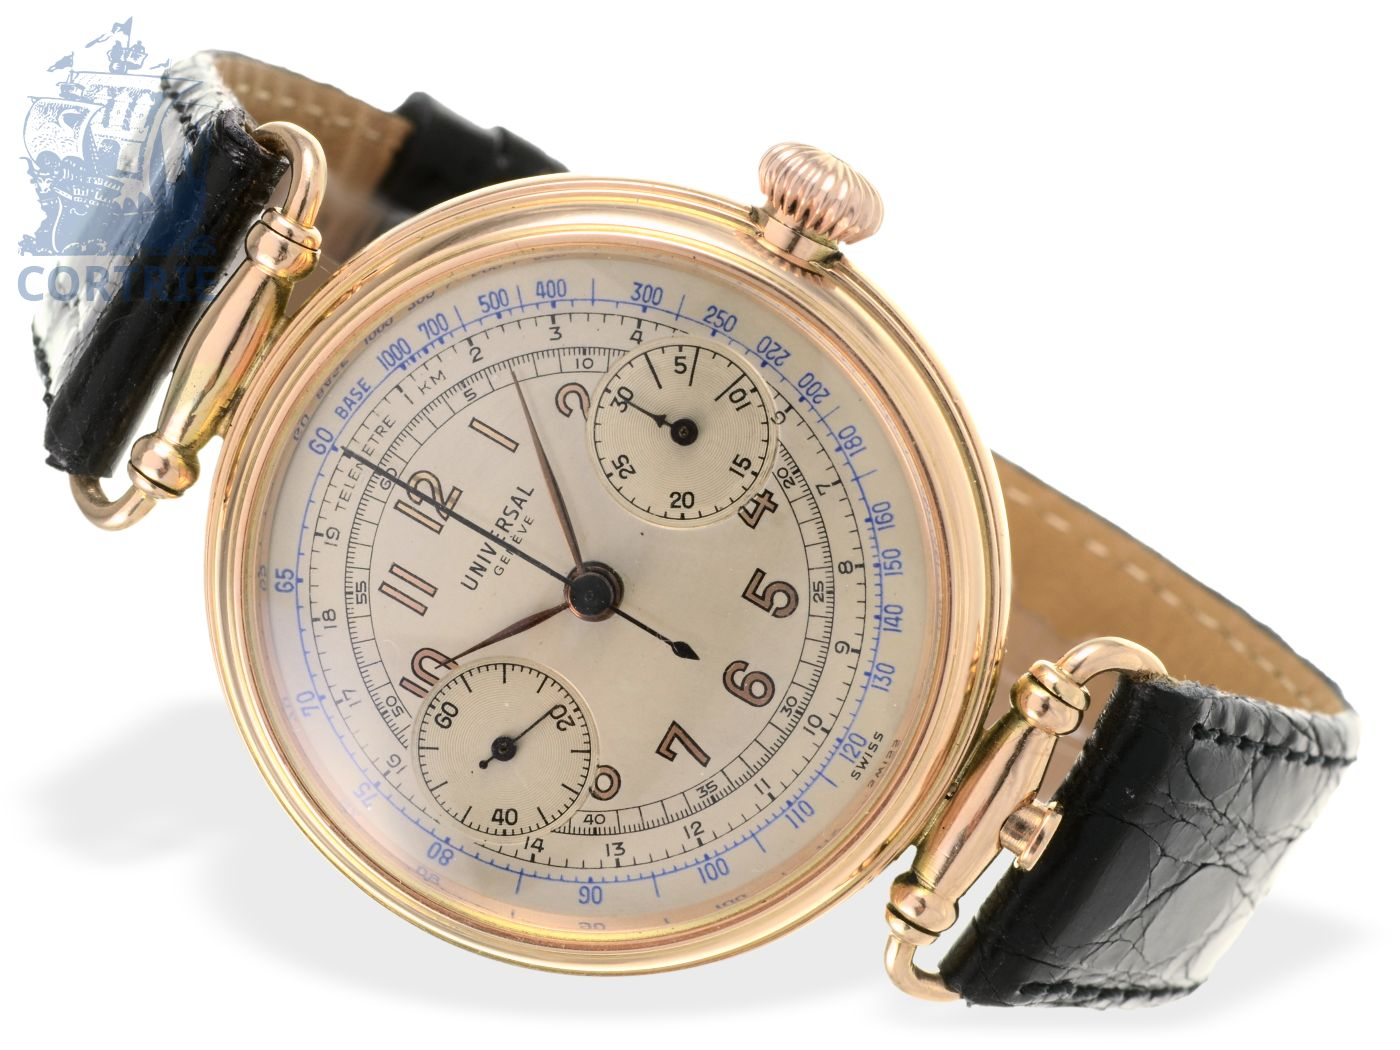 Wristwatch: very early and big chronograph, pink gold, Universal Geneve ca. 1925-